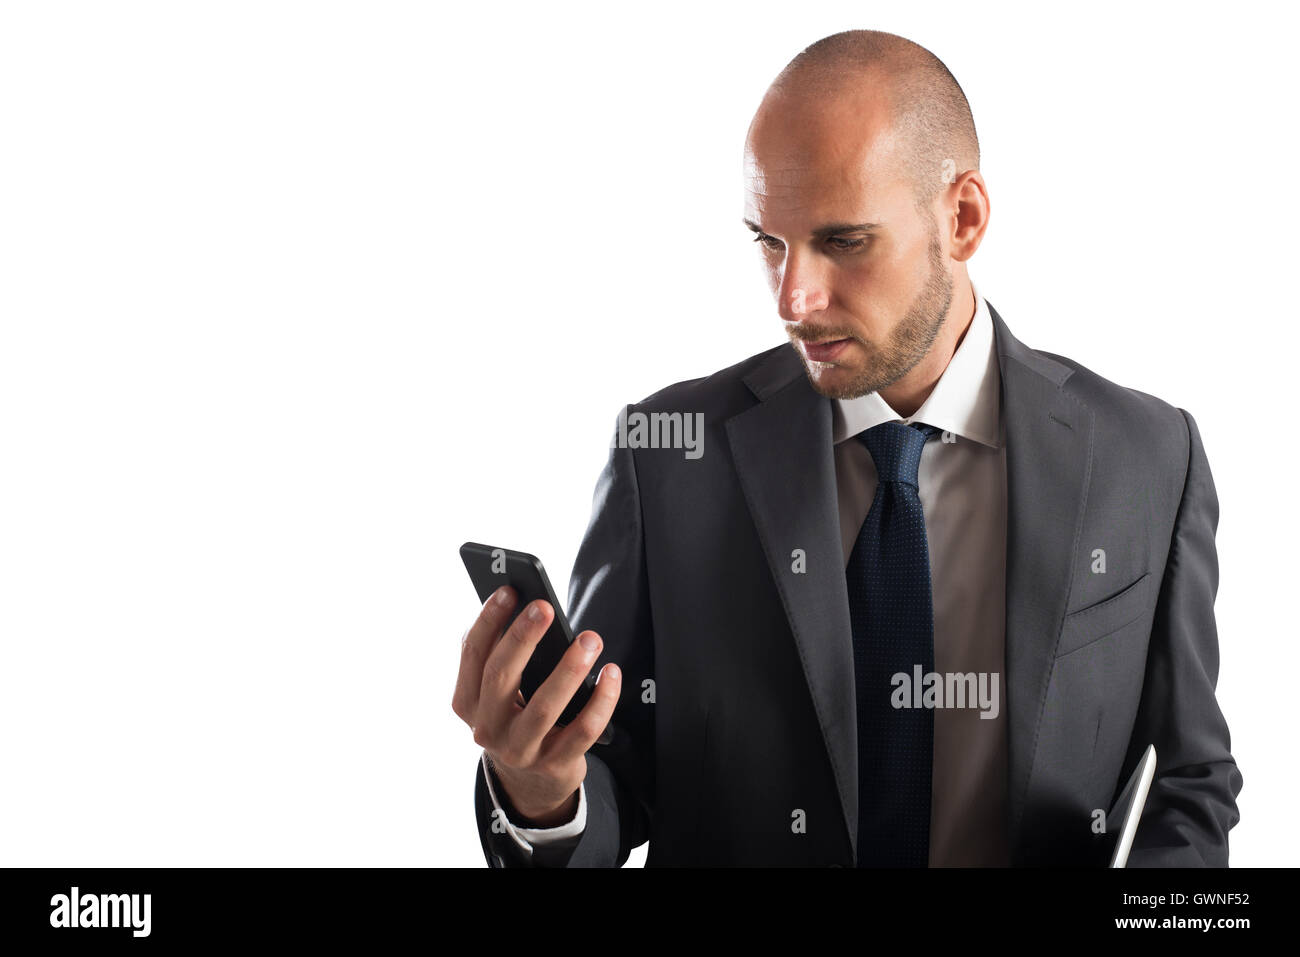 Business cellphone - Stock Image